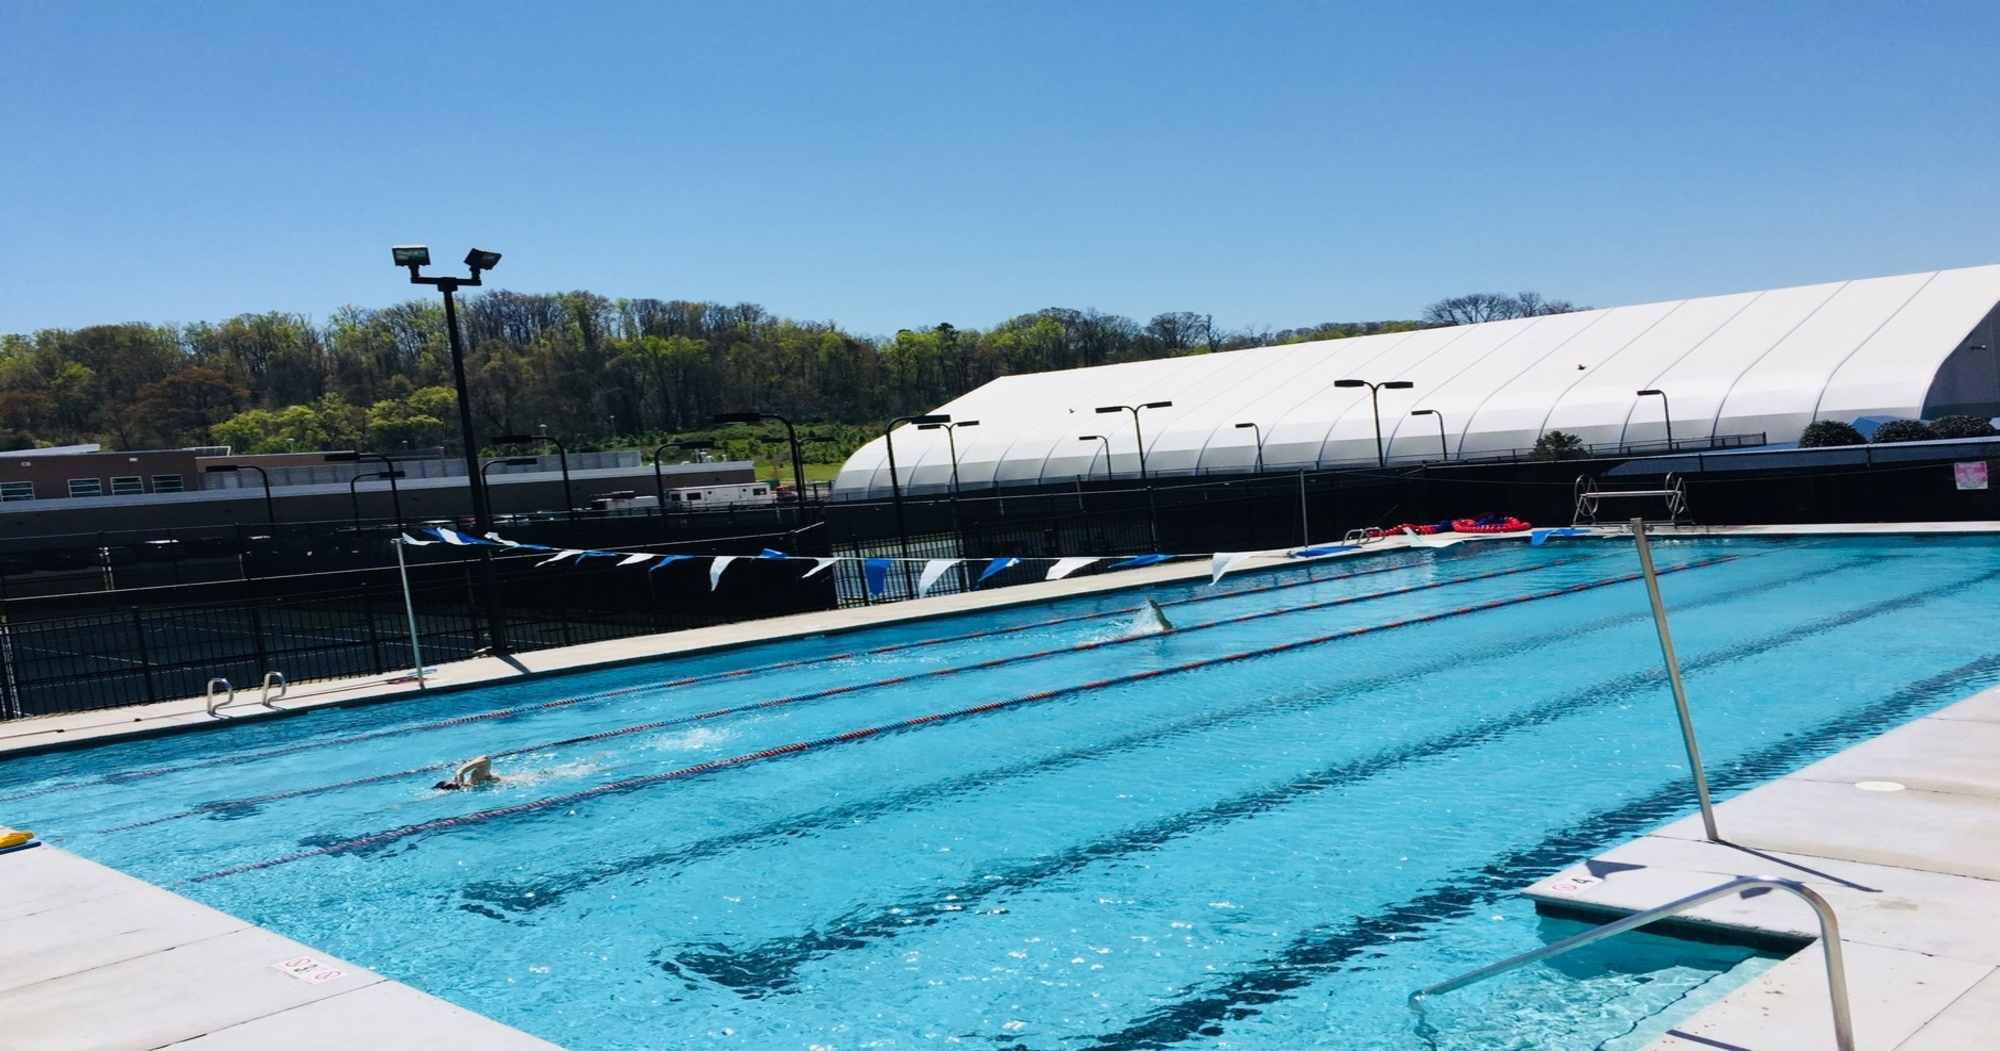 Outdoor pool in knoxville